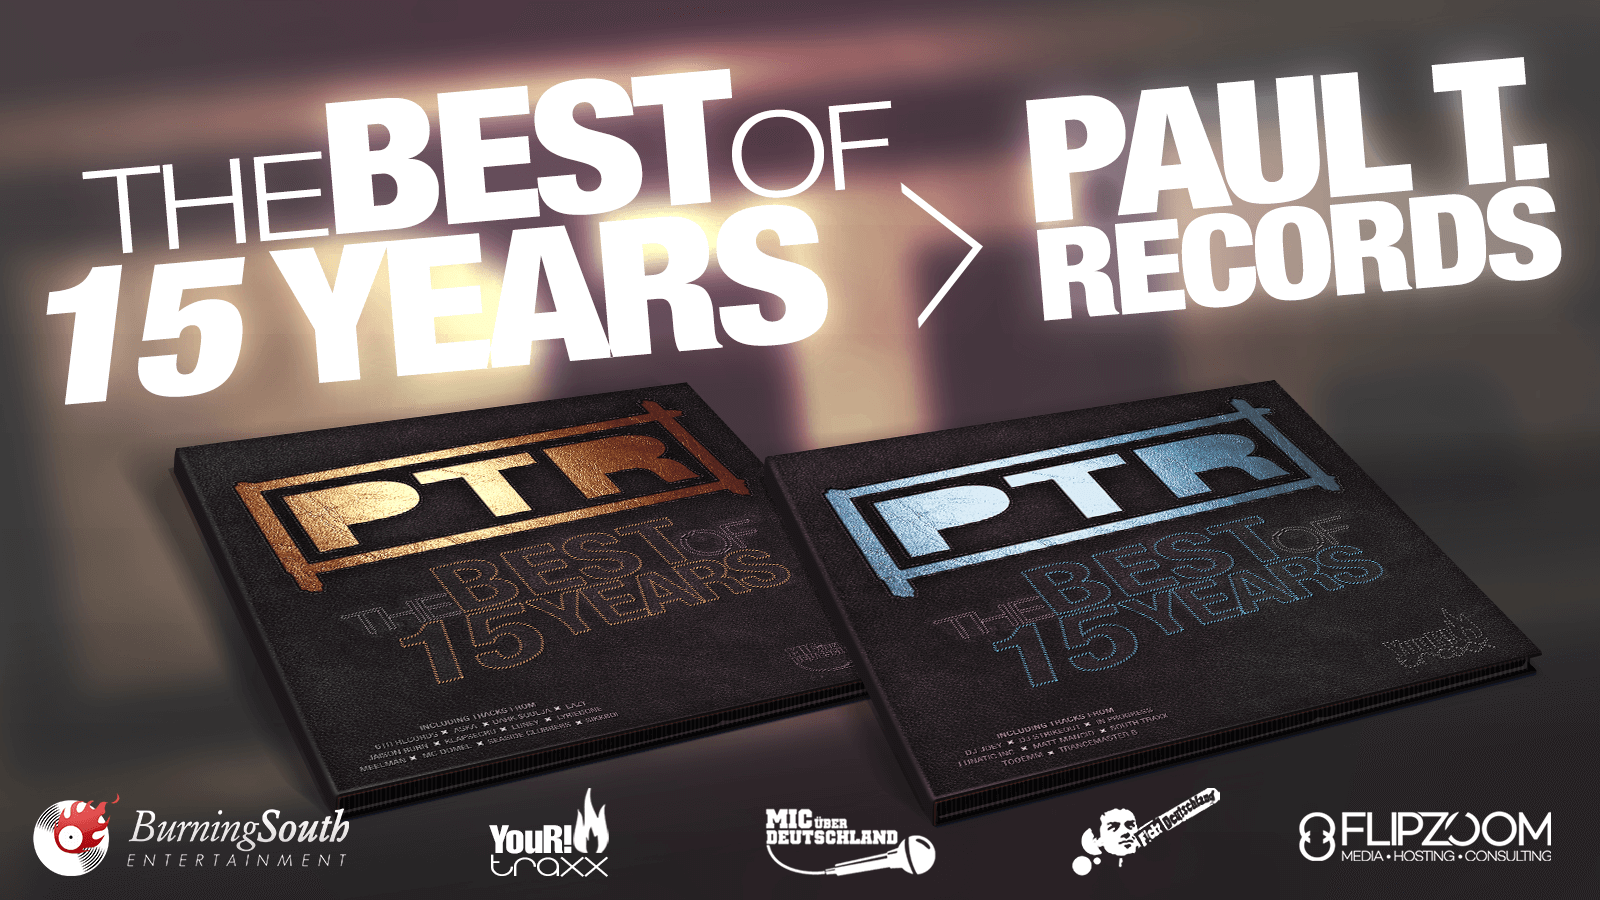 Paul T. Records - The Best Of 15 Years - Free Download!